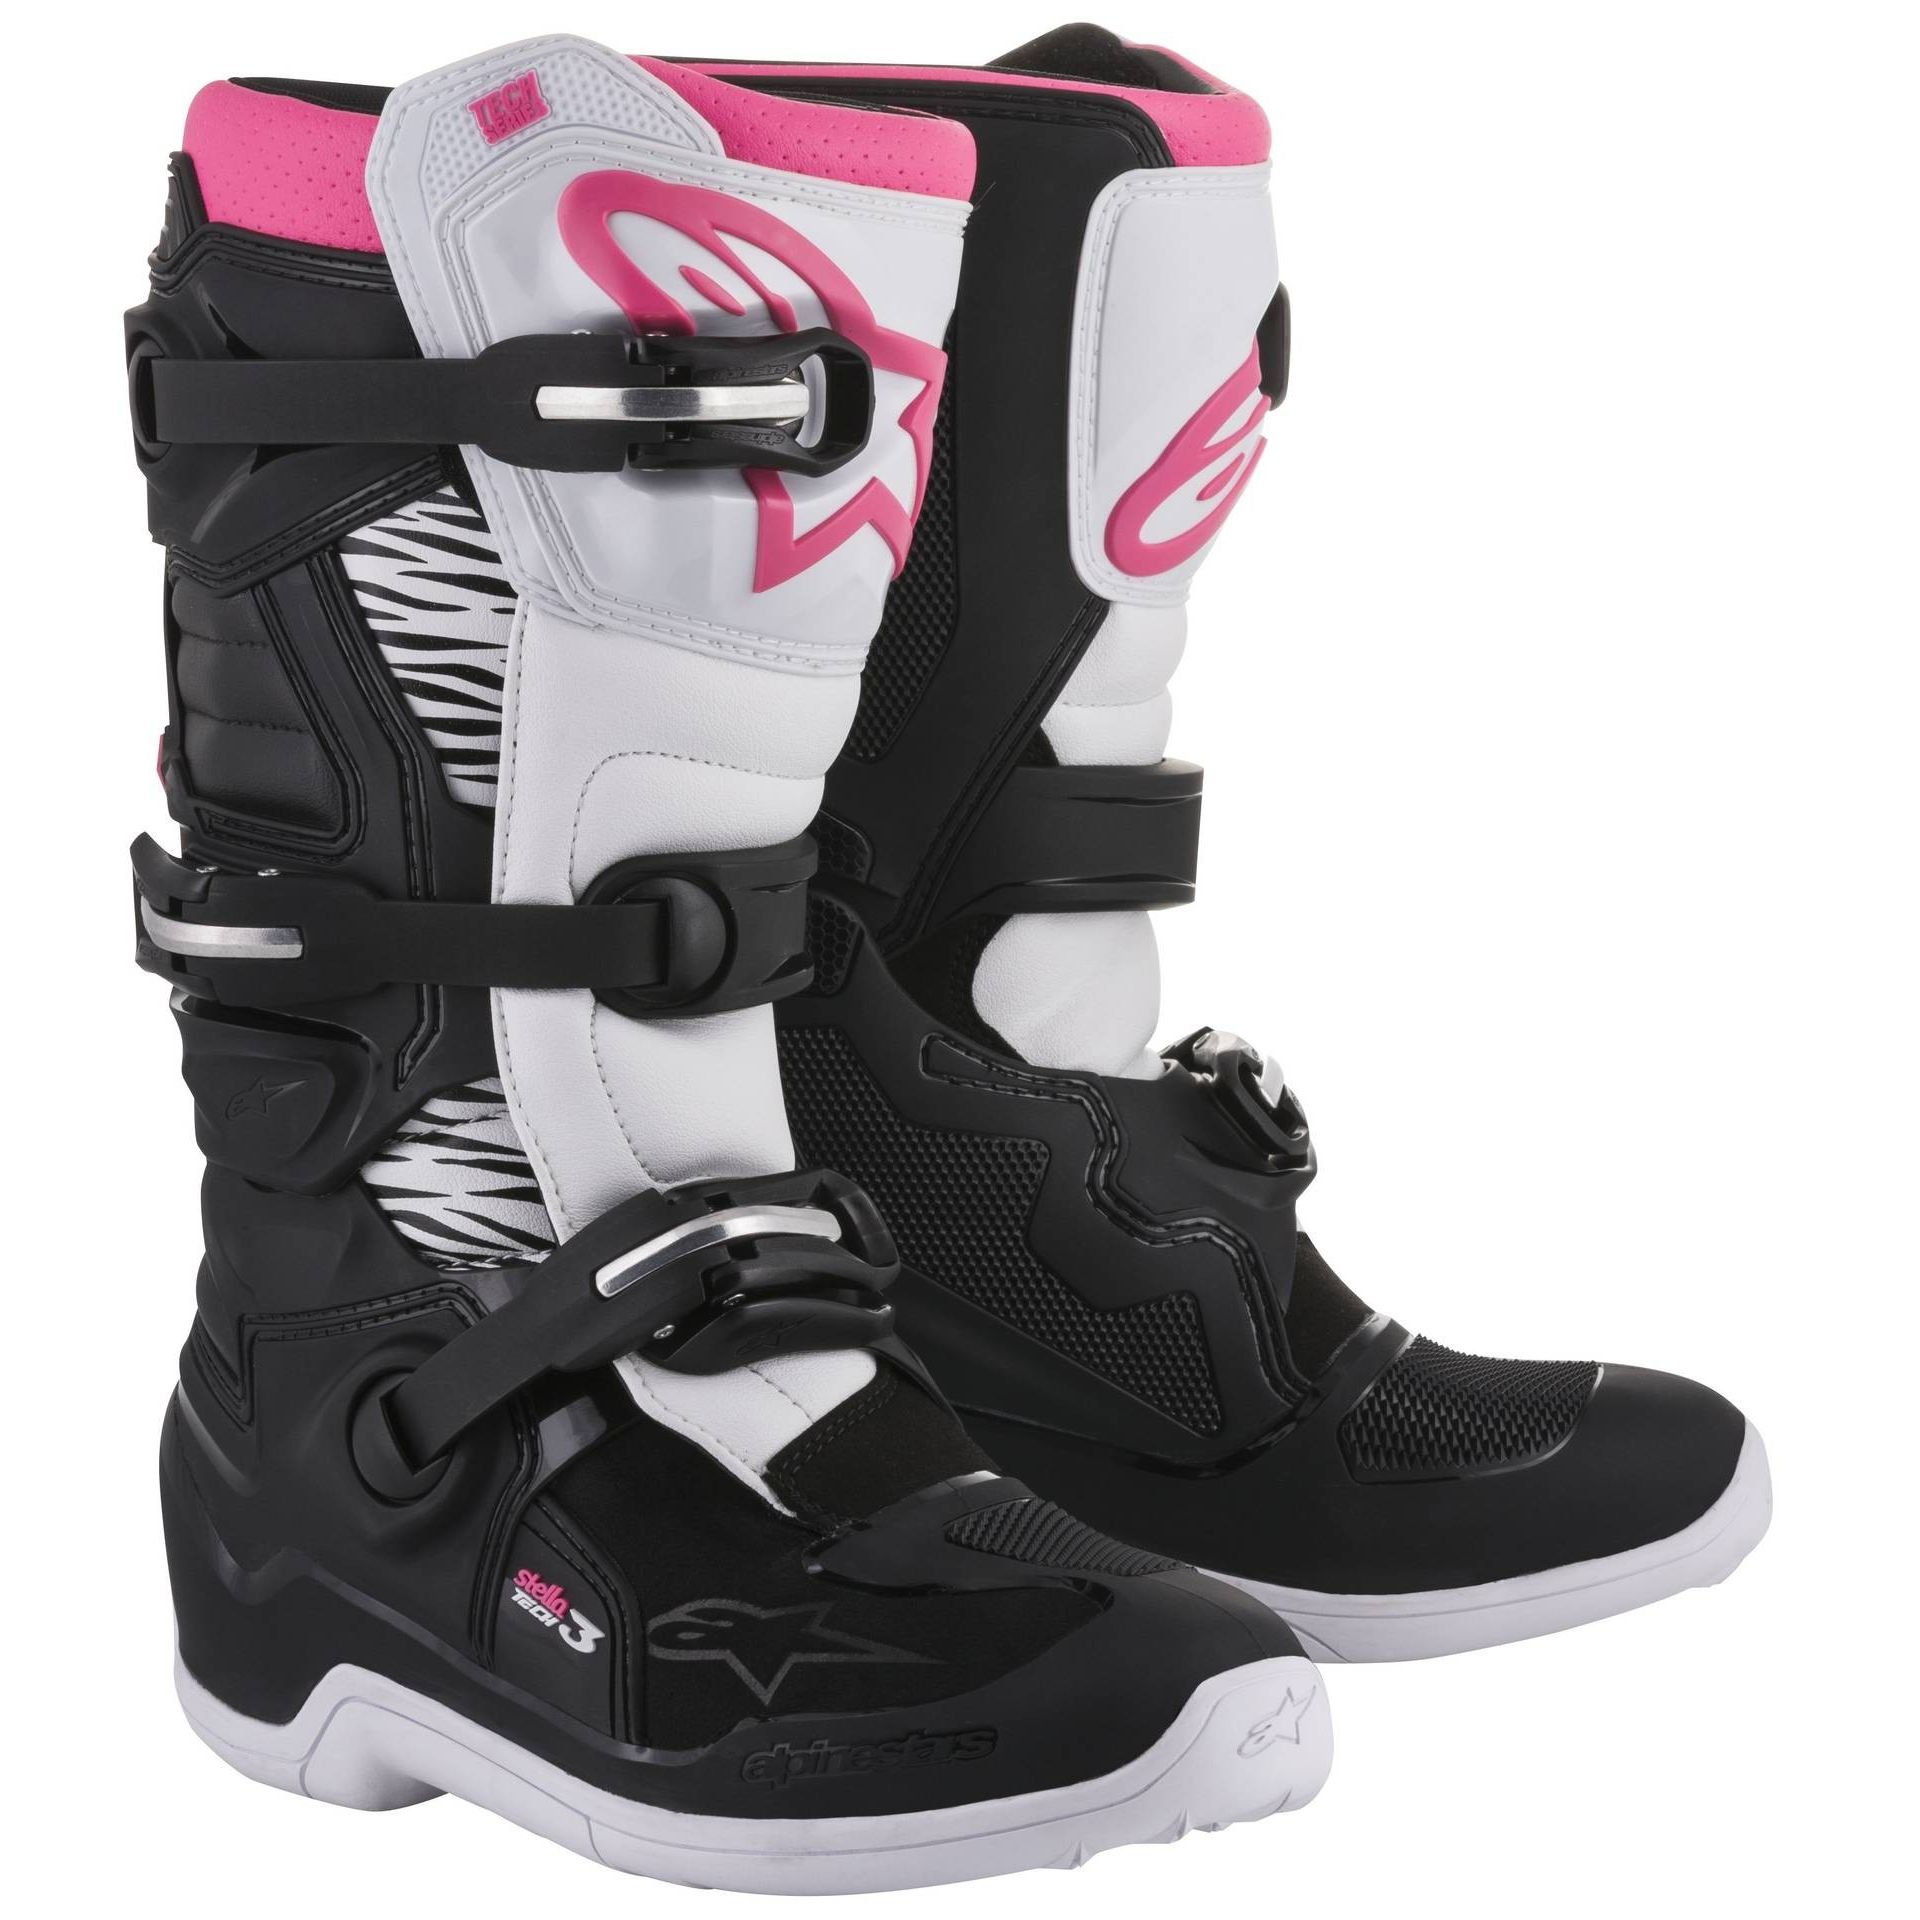 bottes cross alpinestars stella tech 3 black white pink 2018 bottes cross. Black Bedroom Furniture Sets. Home Design Ideas